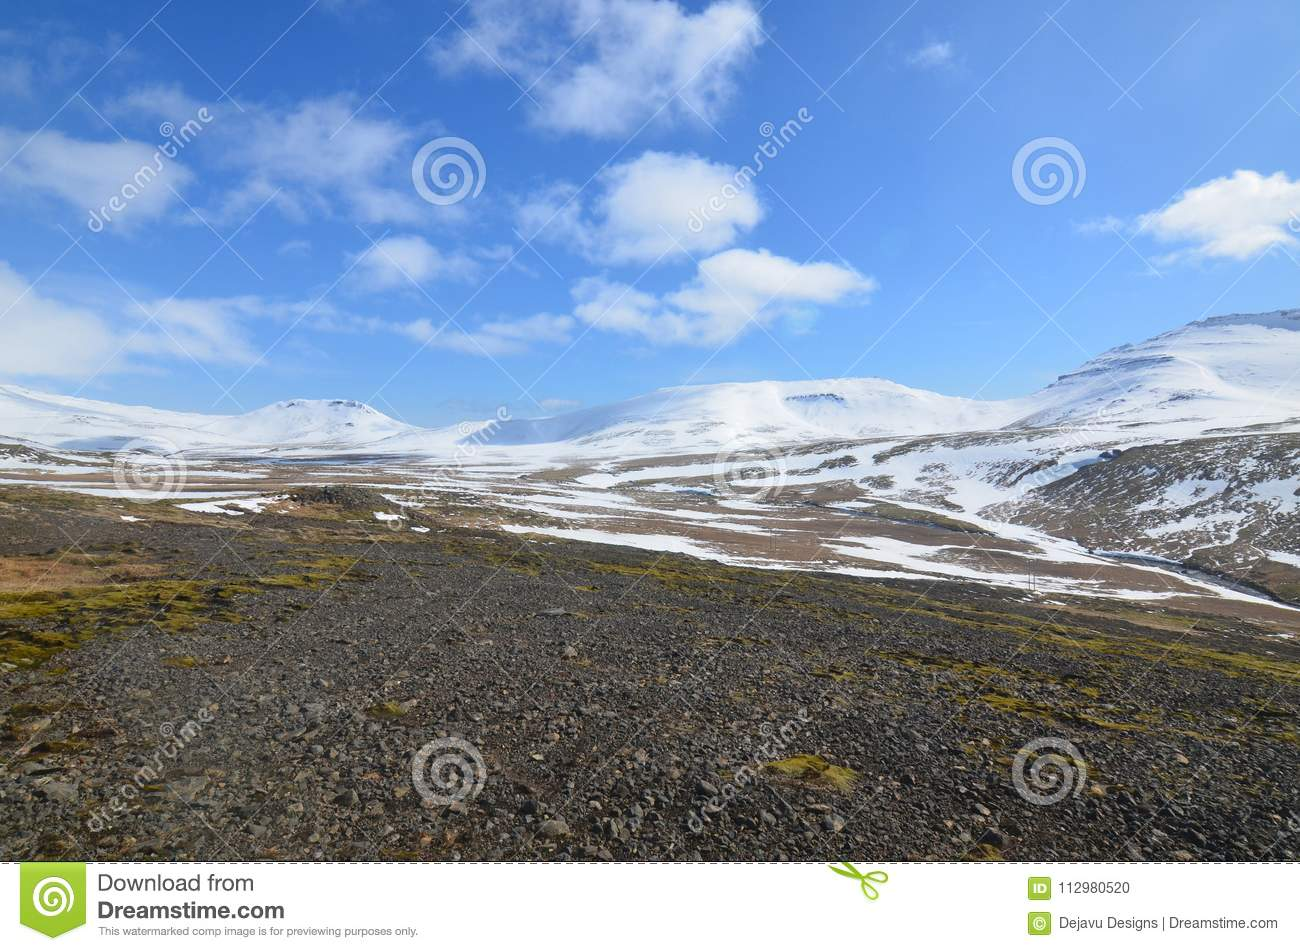 Snow Capped Glaciers in Western Iceland on Snaefellsnes Peninsula